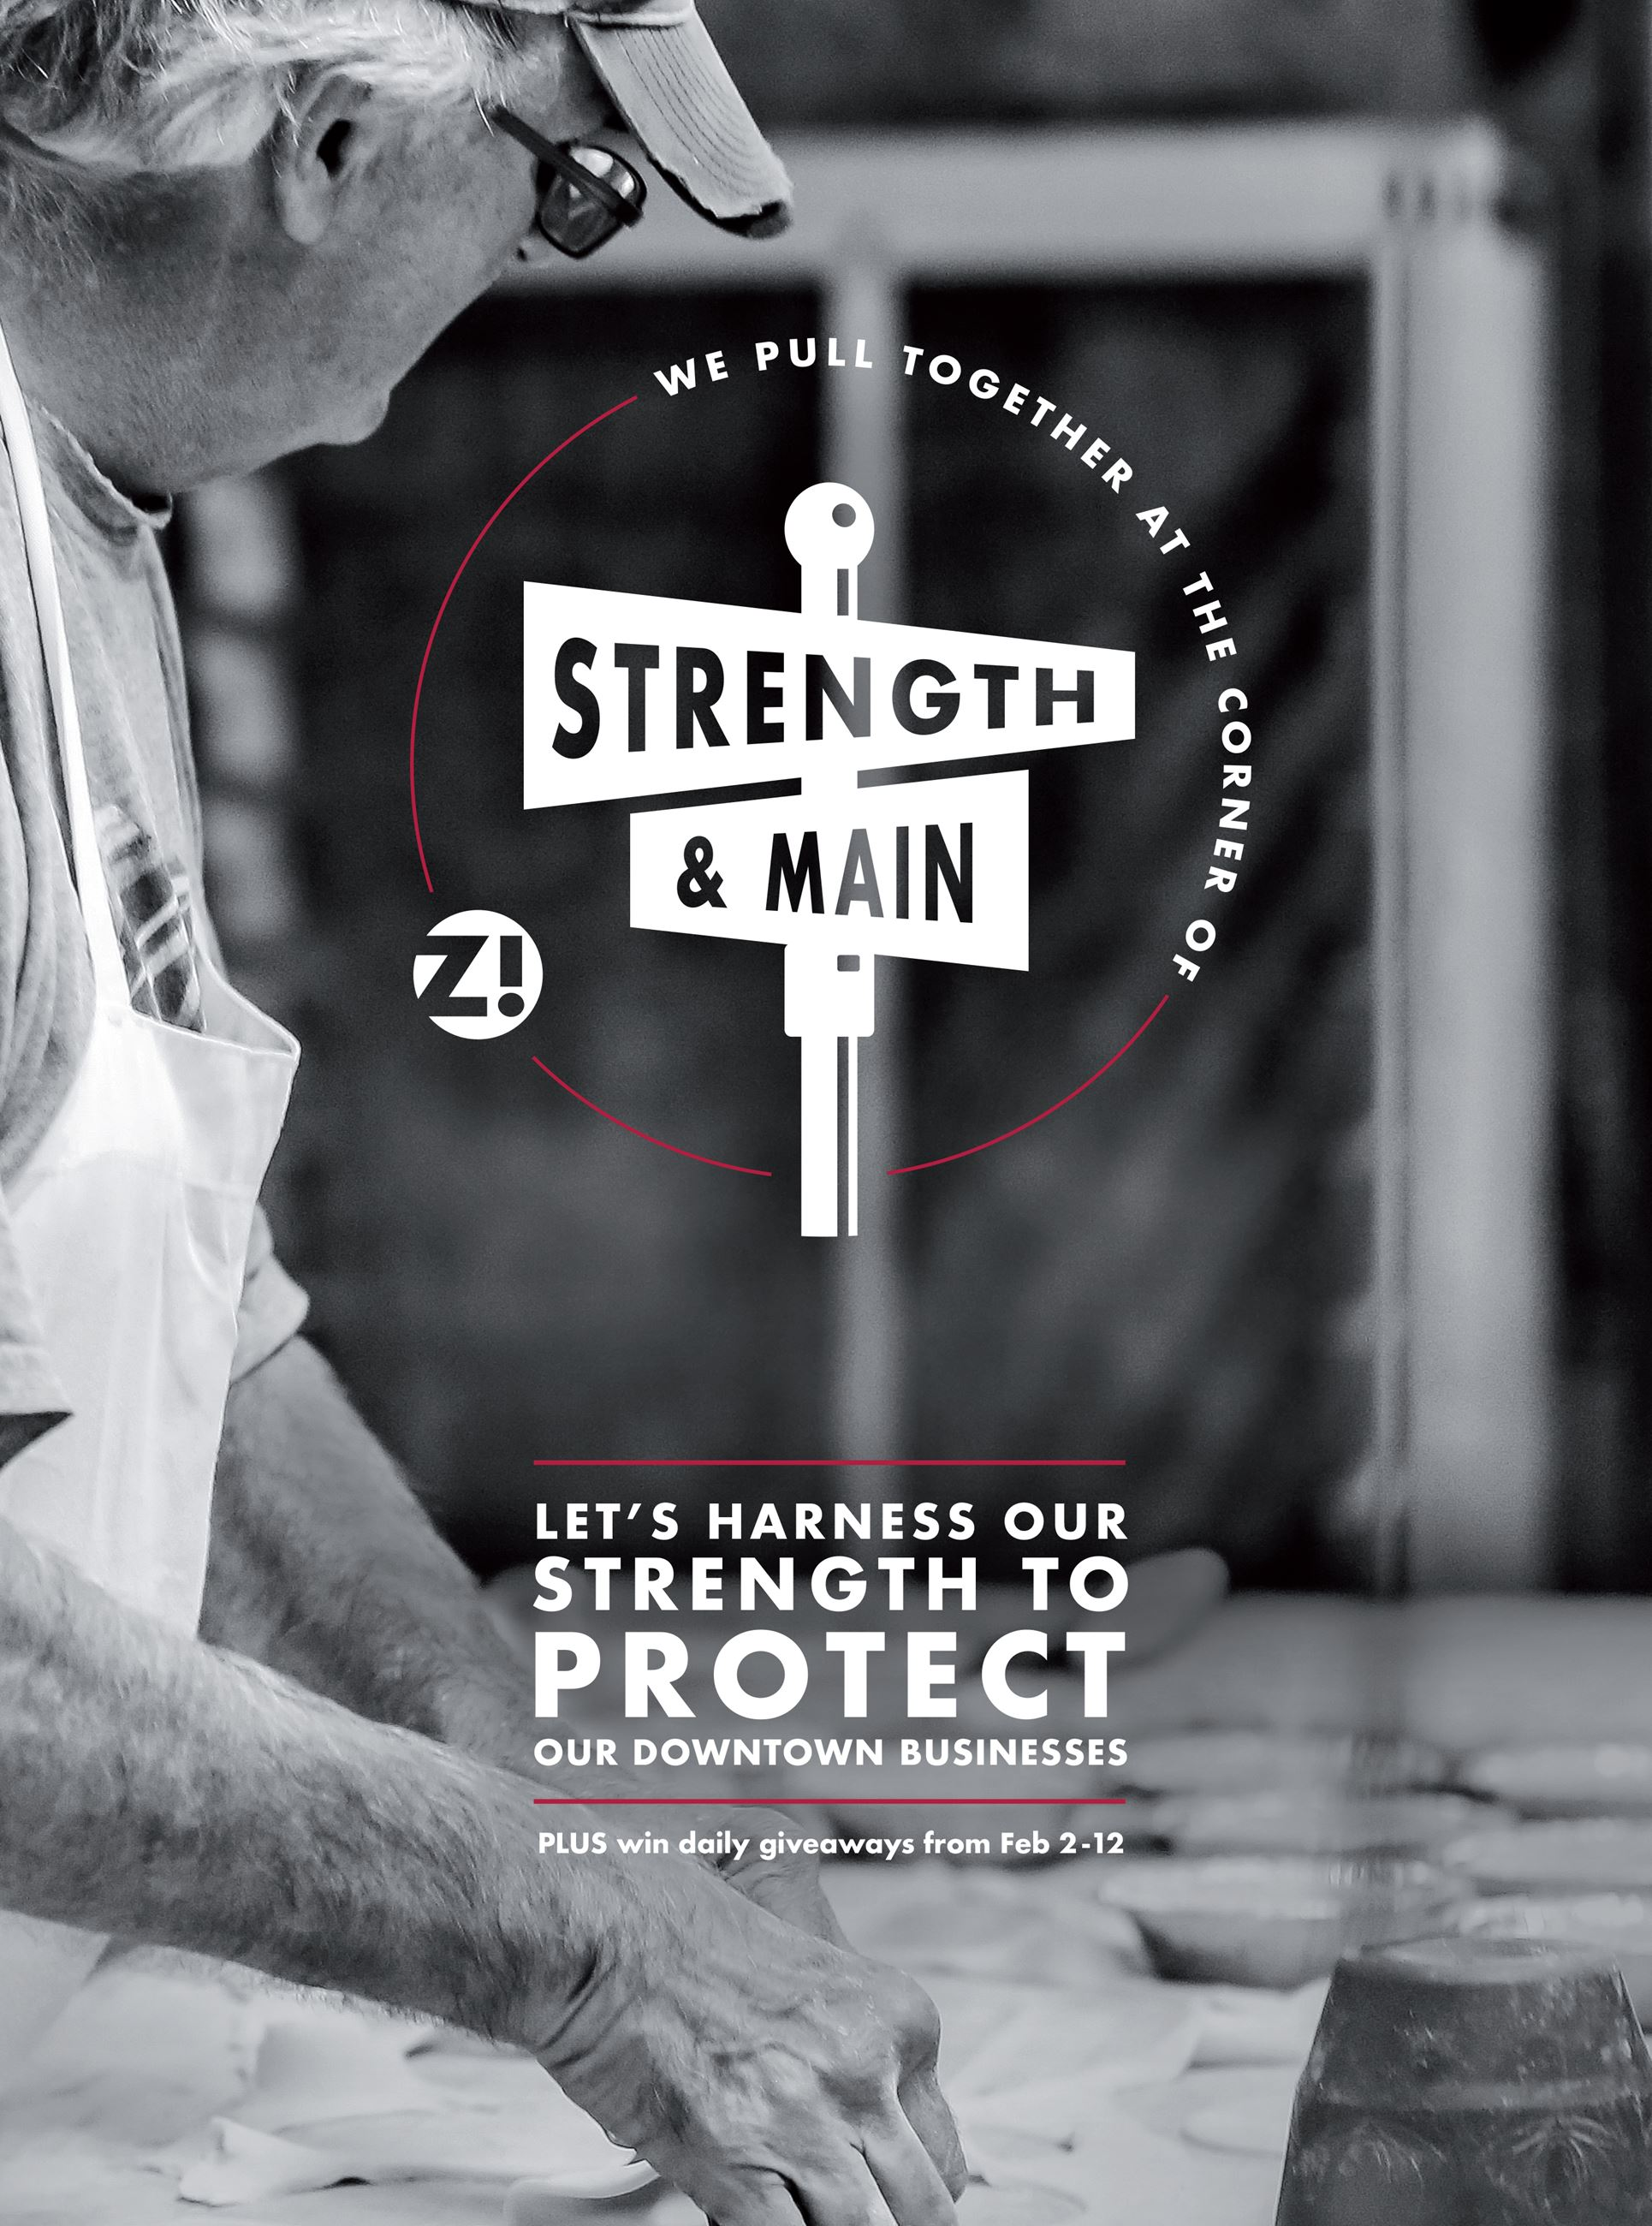 strength and main image 1